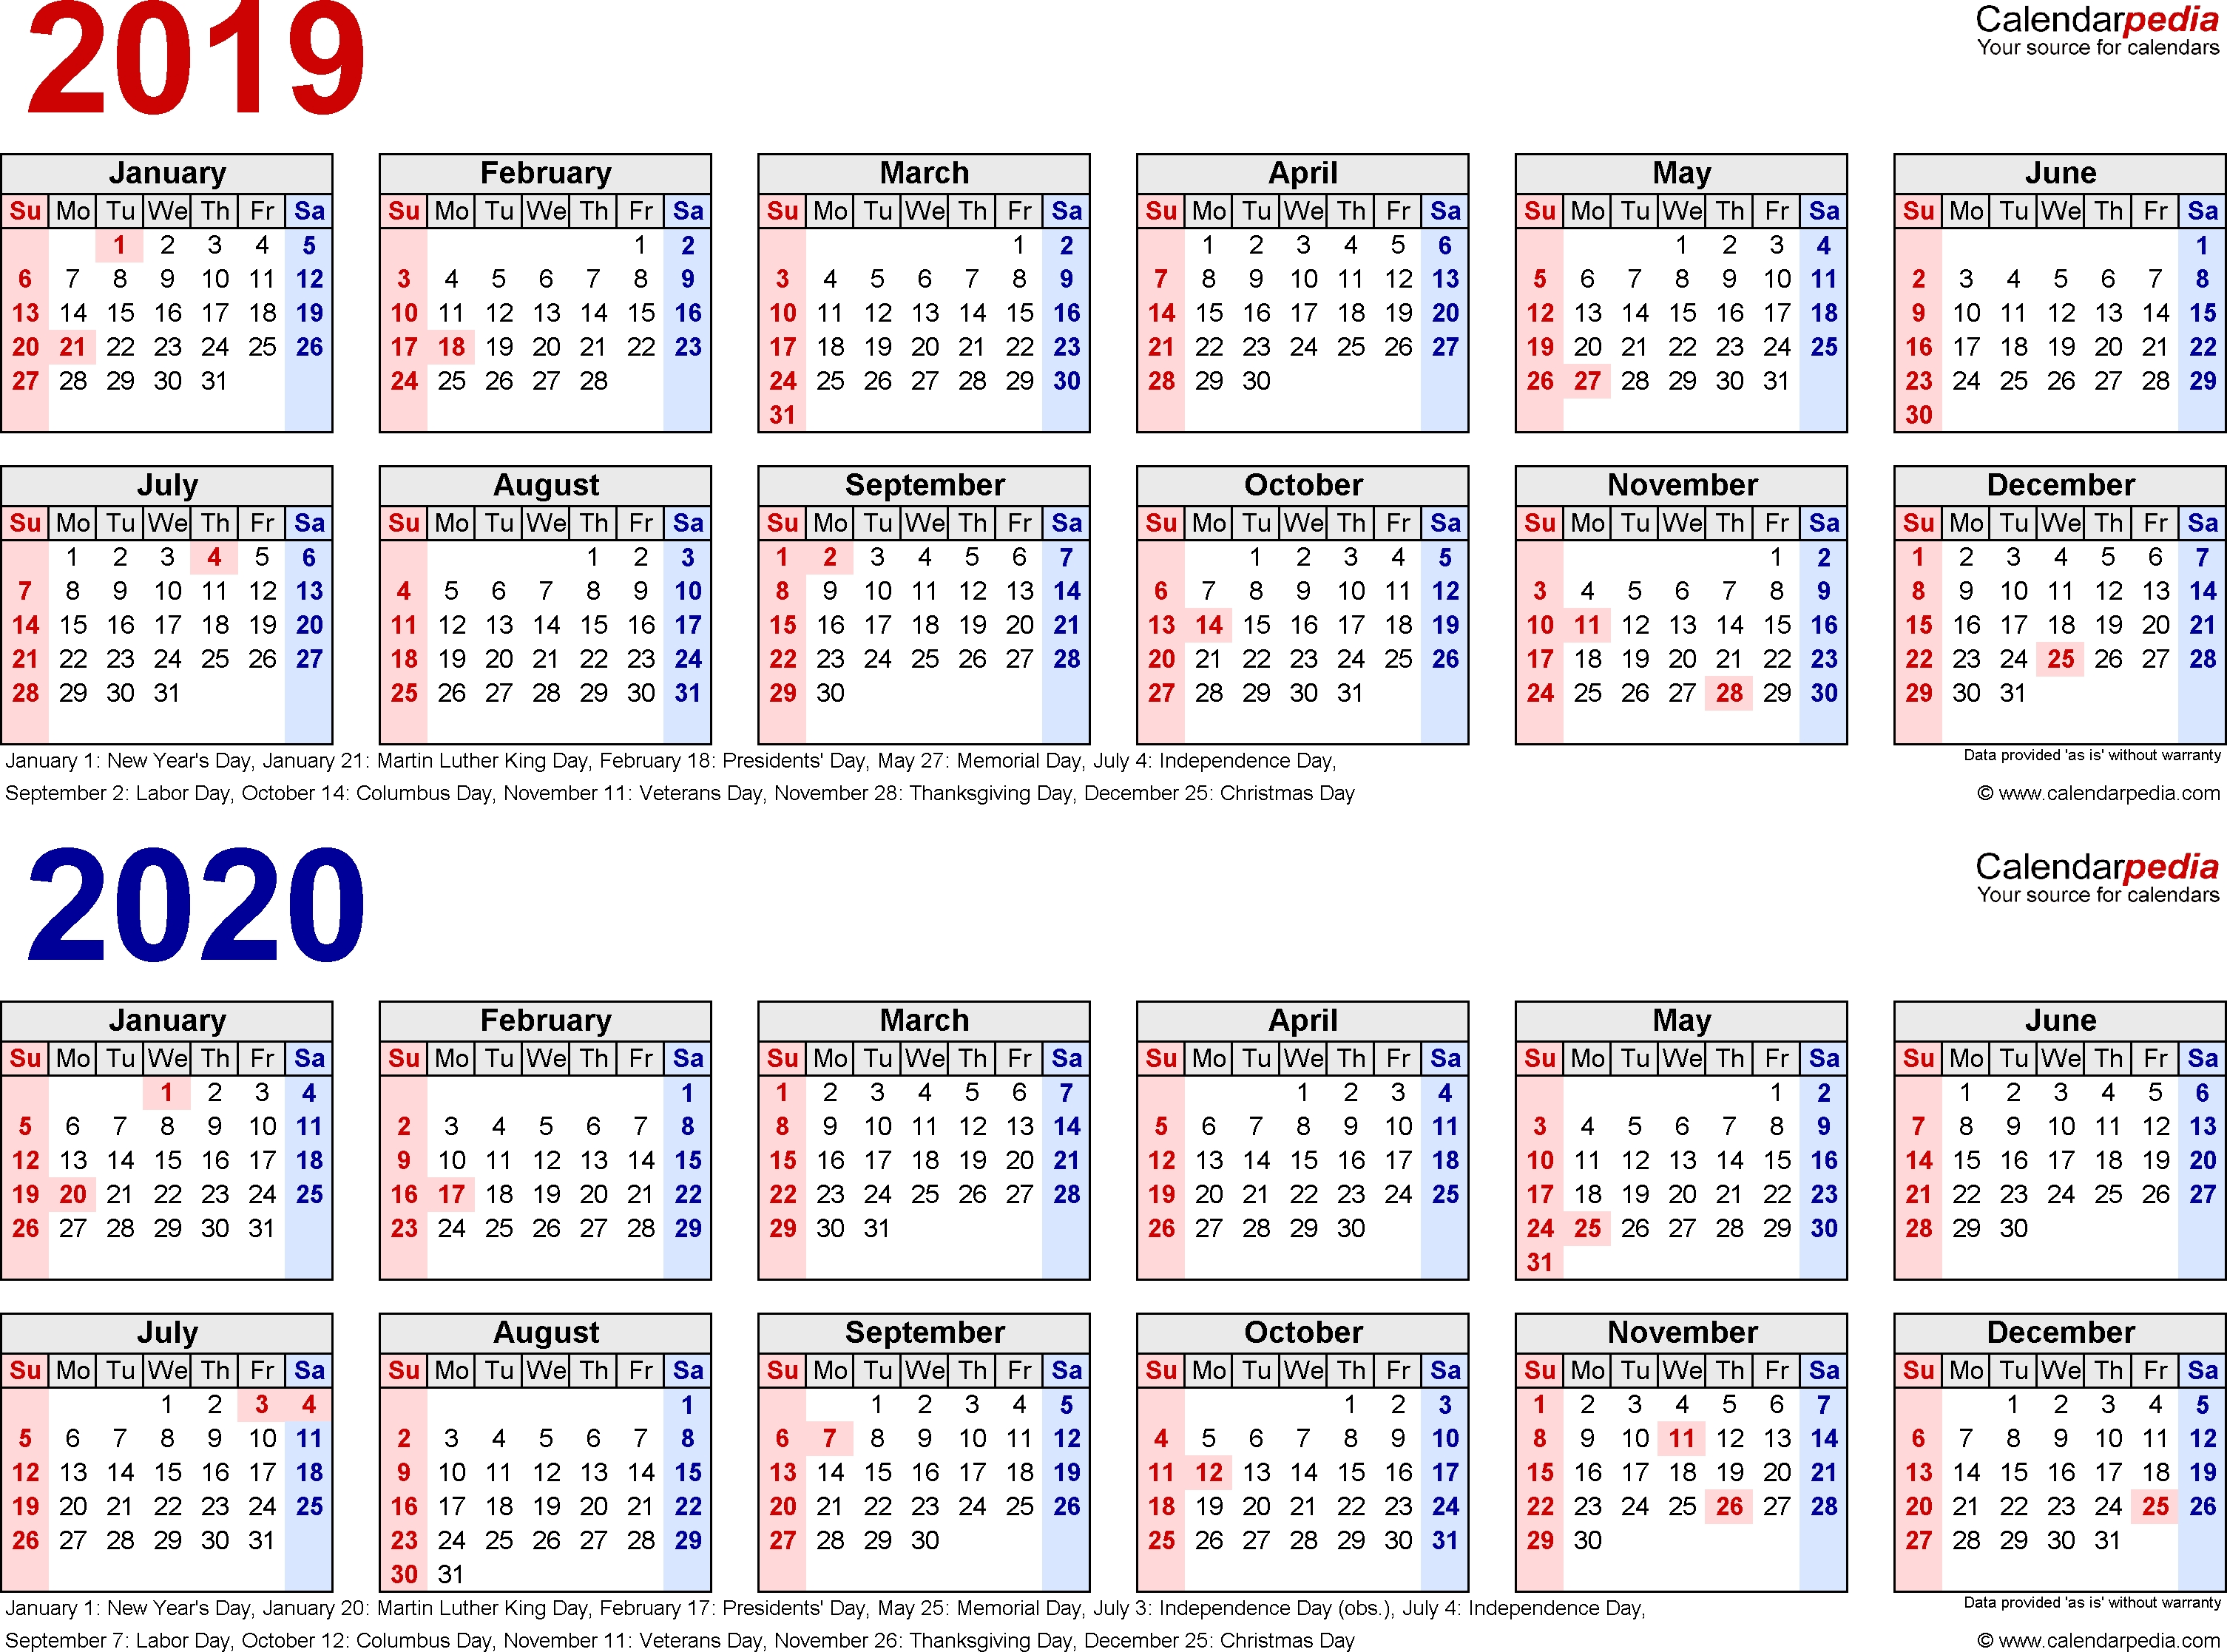 2019-2020 Calendar - Free Printable Two-Year Excel Calendars intended for Google Annual Calendar 2019-2020